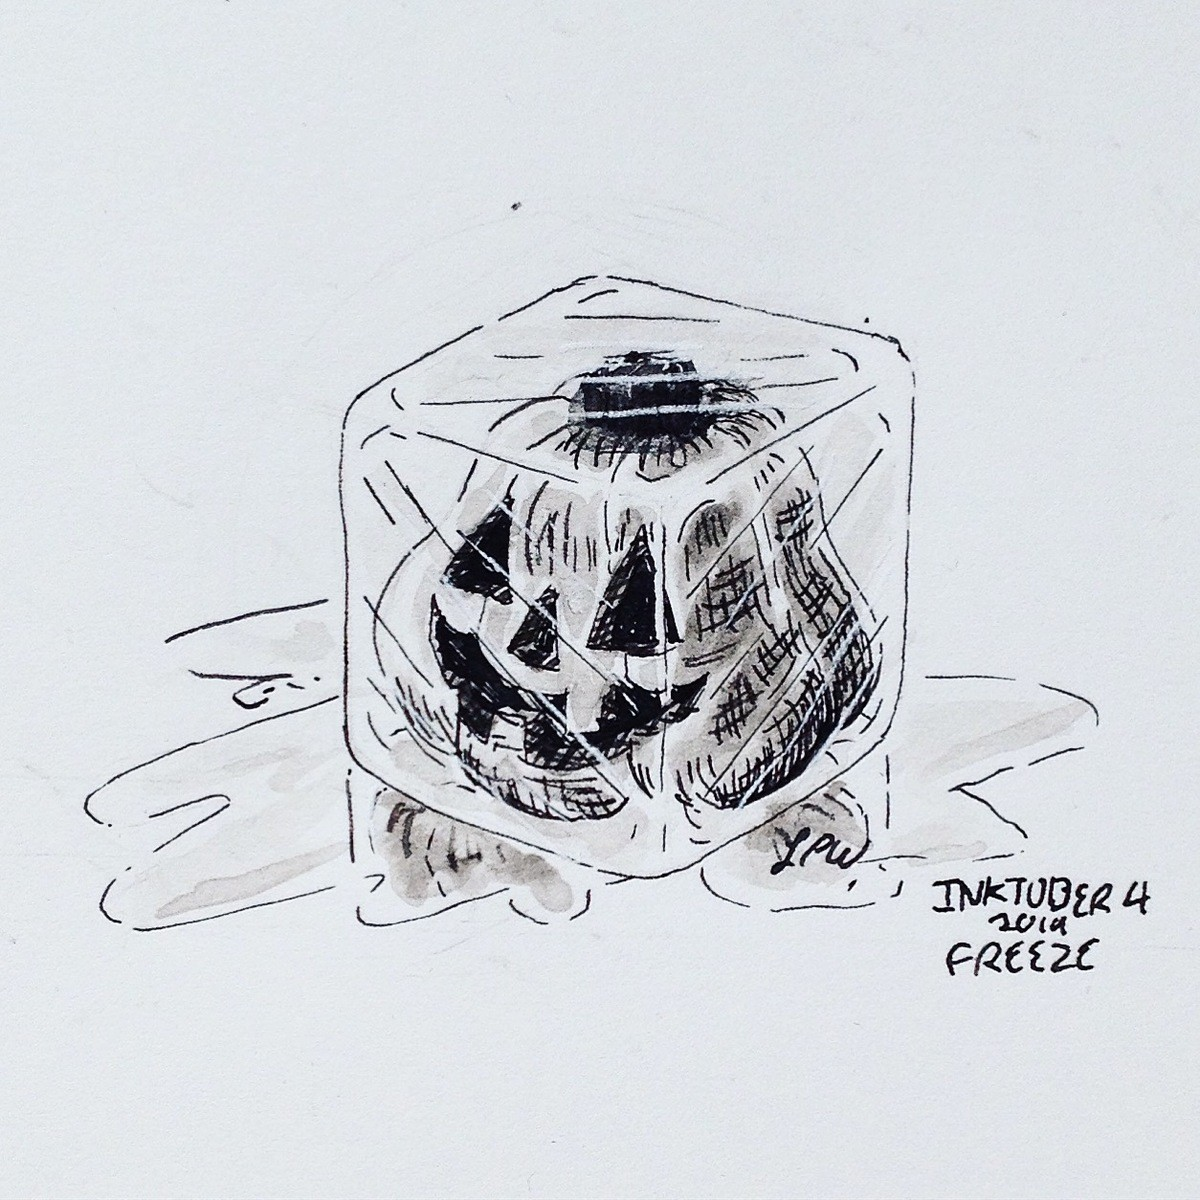 Inktober Day 4: Freeze. Inktober Day 4: FREEZE join list: WatercolorAndOrInk (16 subs)Mention History I'm not going to saw how long it took me to make that cube